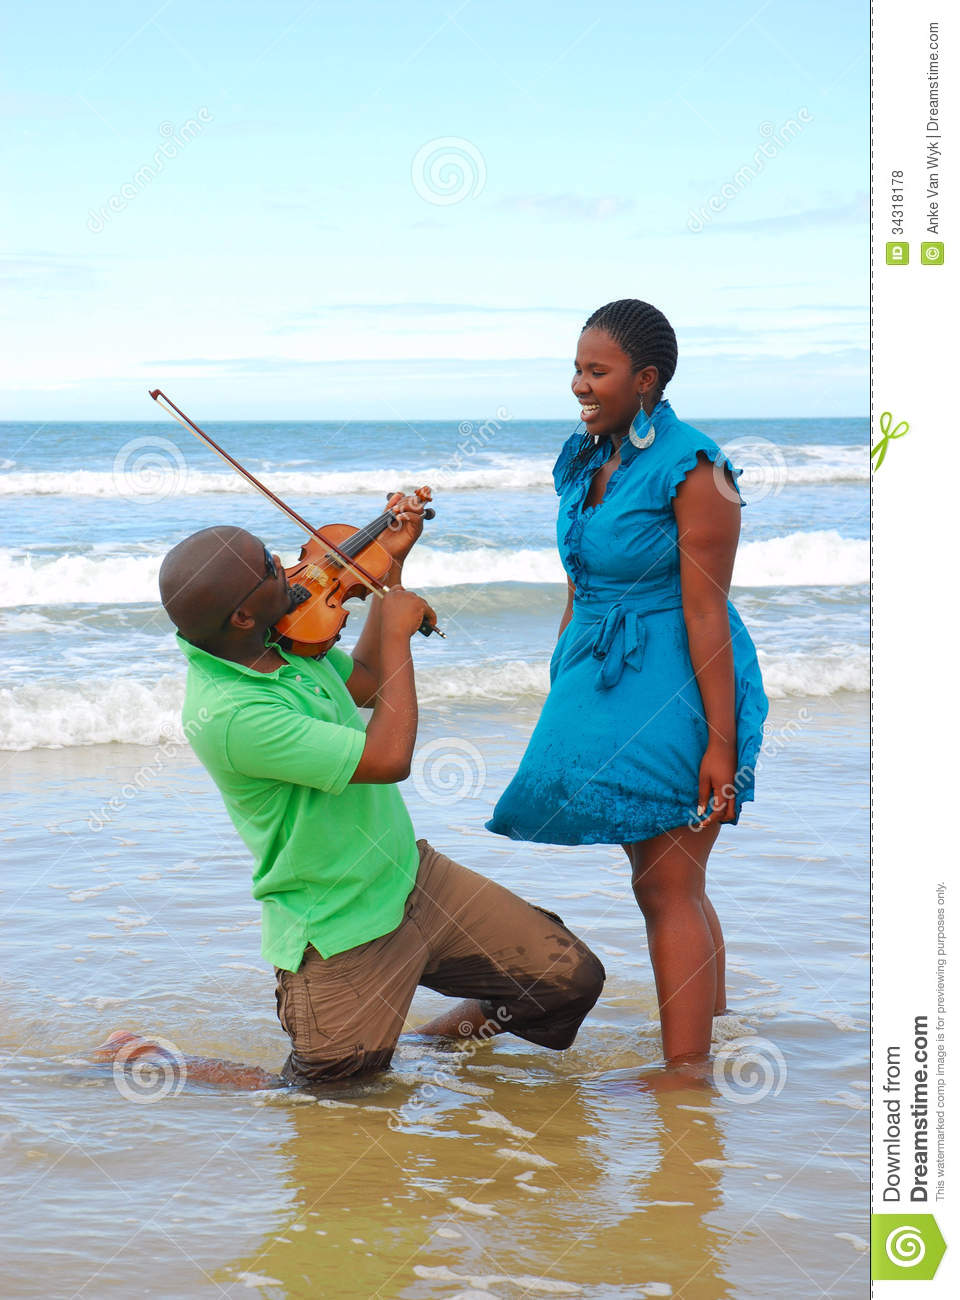 Woman surprised by beach musician